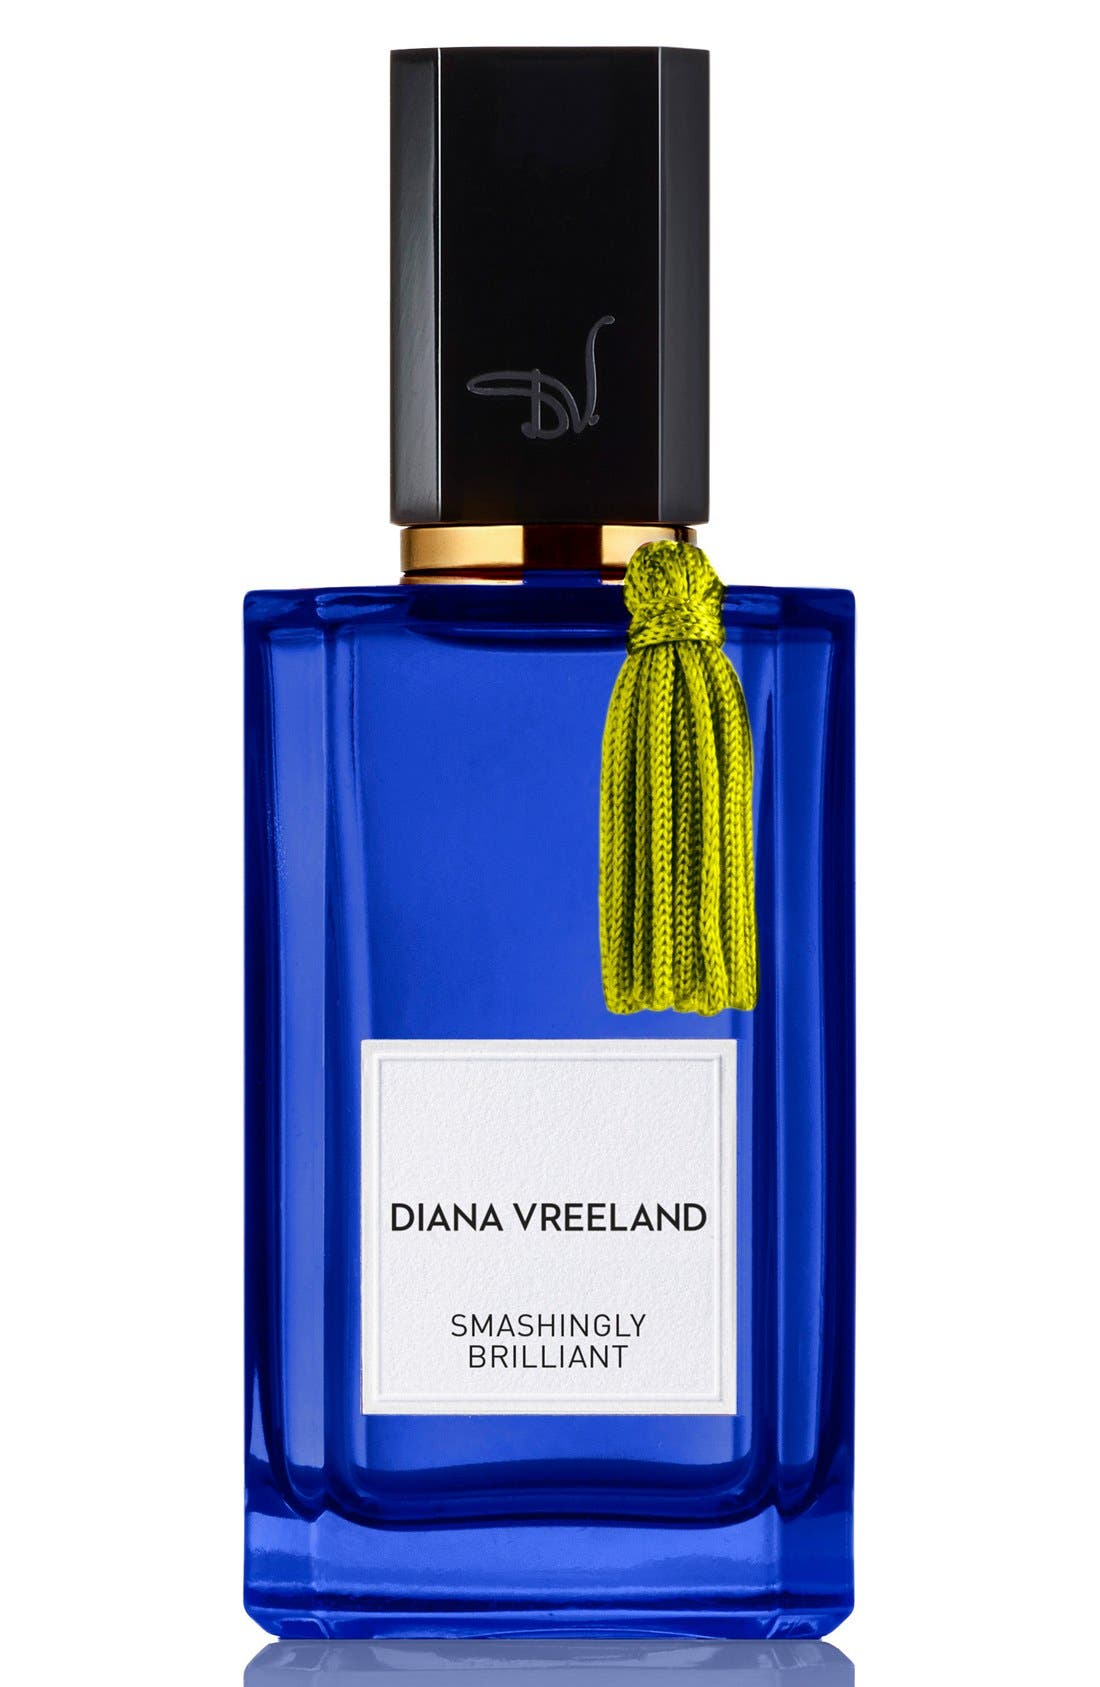 Diana Vreeland 'Smashingly Brilliant' Fragrance